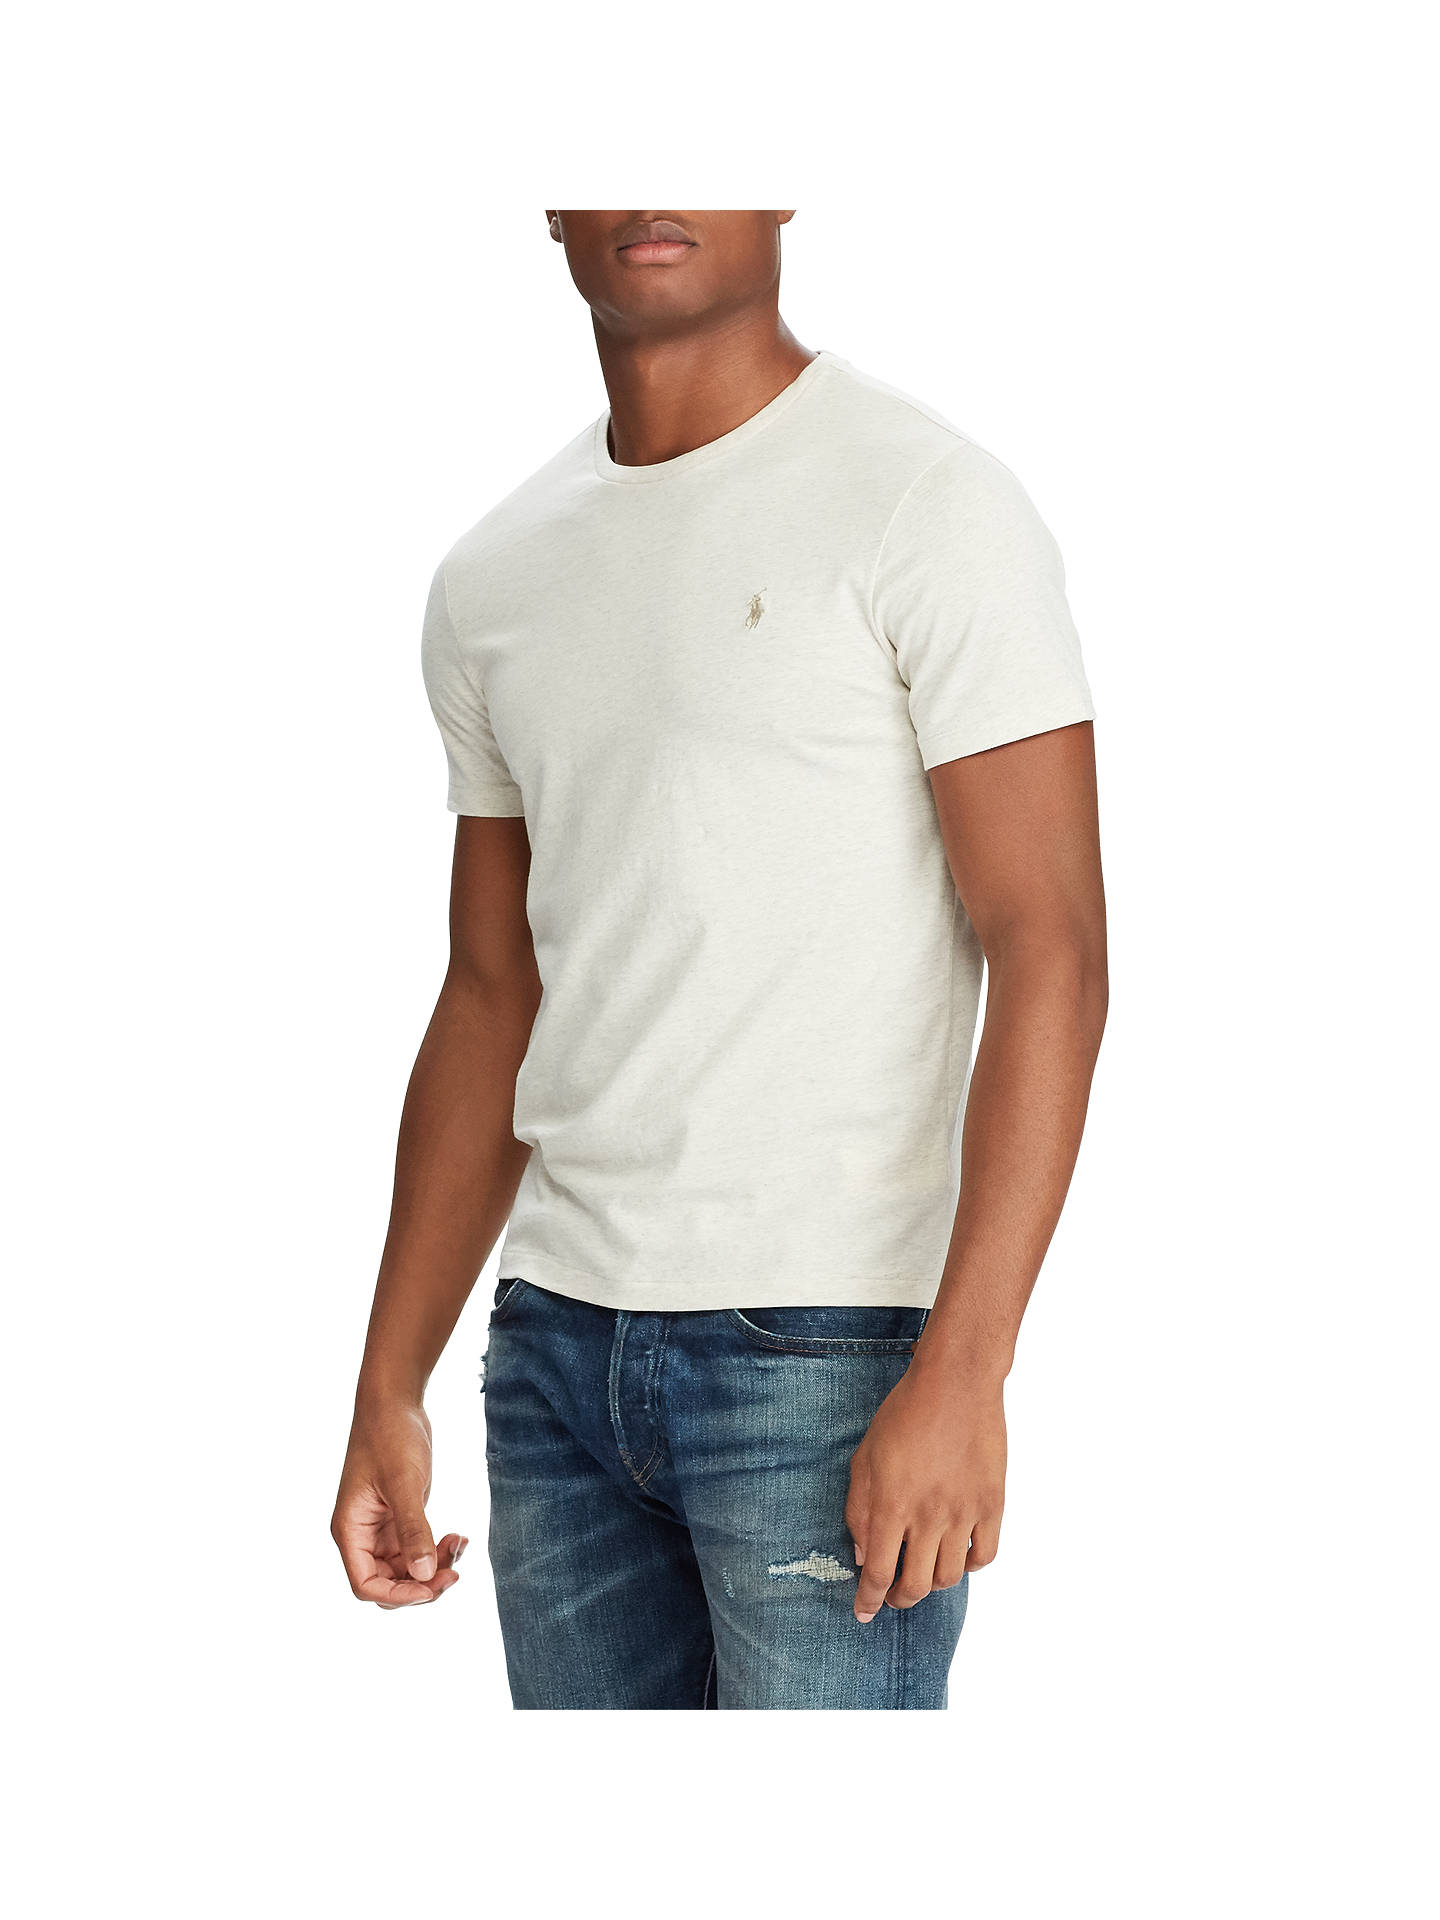 98f7966b Polo Ralph Lauren Slim FIt Crew Neck T-Shirt, New Sand at John Lewis ...